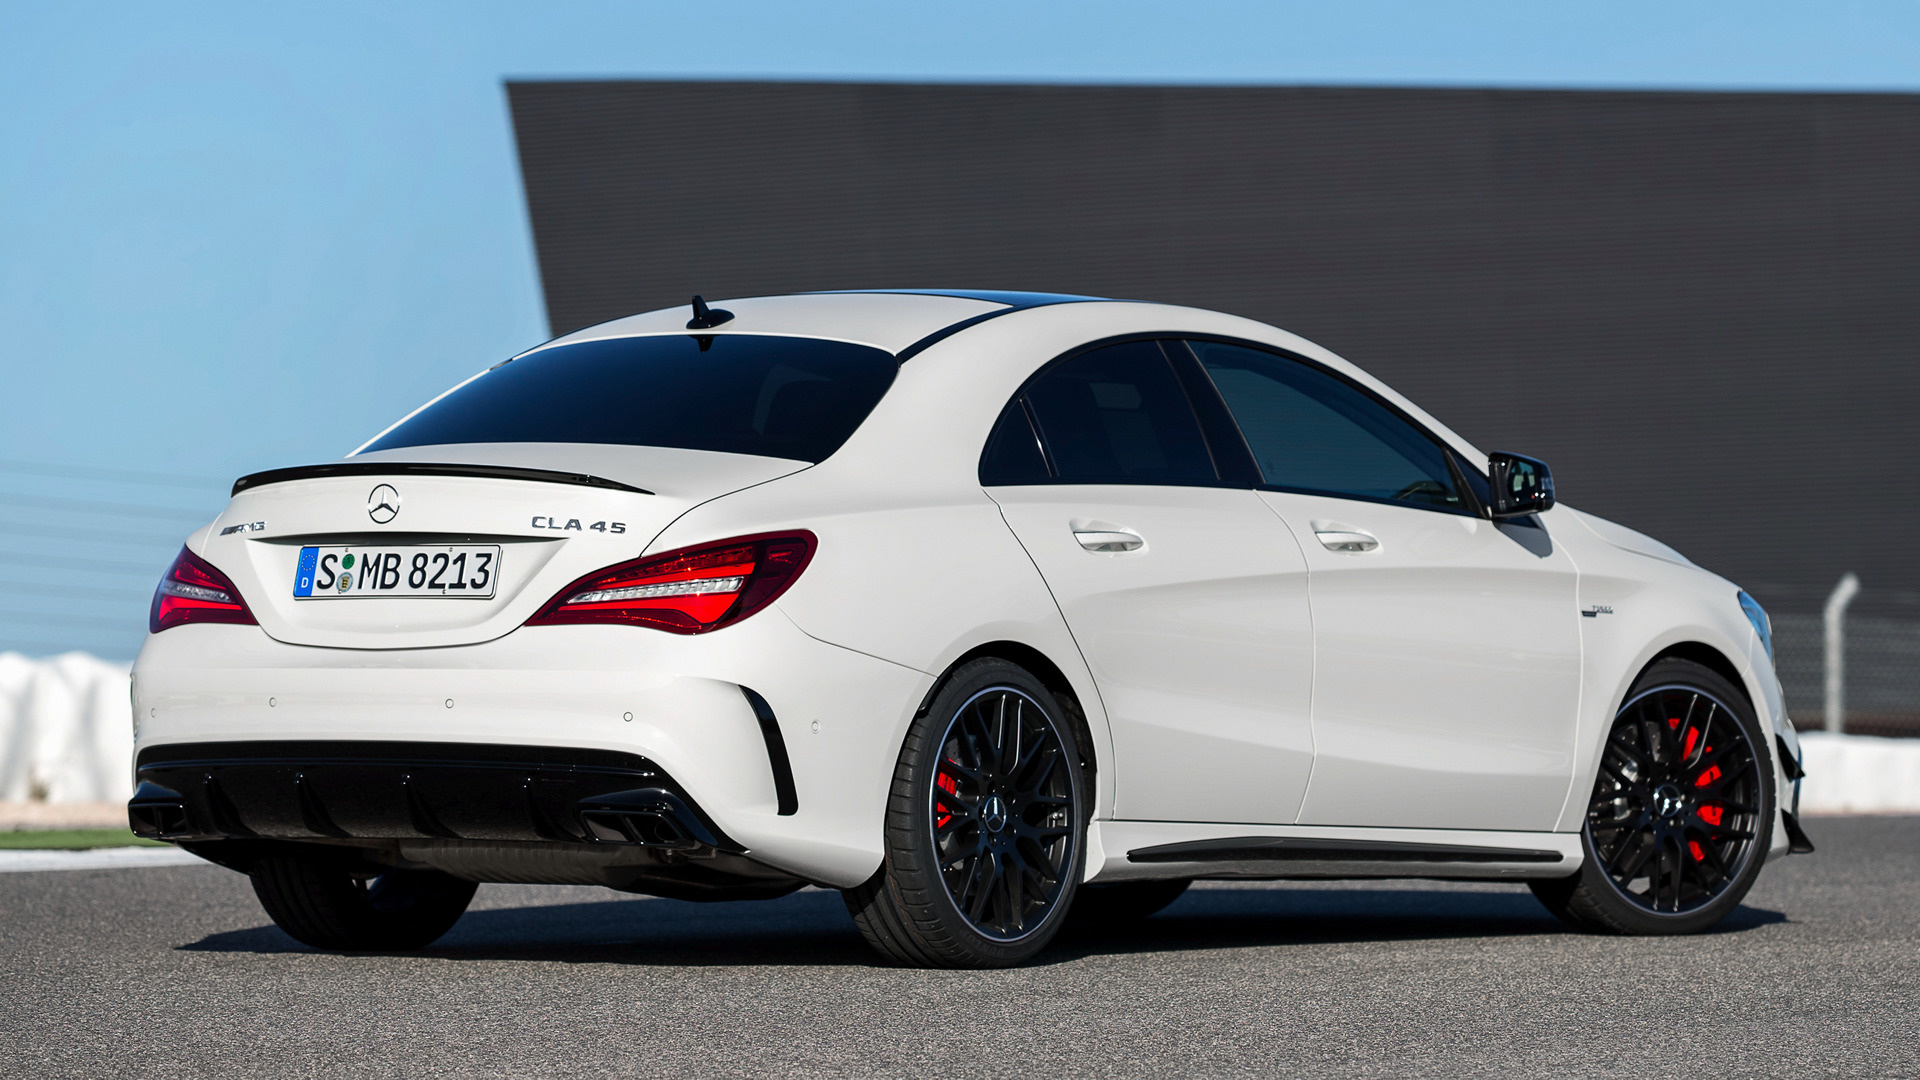 2016 Mercedes-AMG CLA 45 Aerodynamics Package - Wallpapers ...